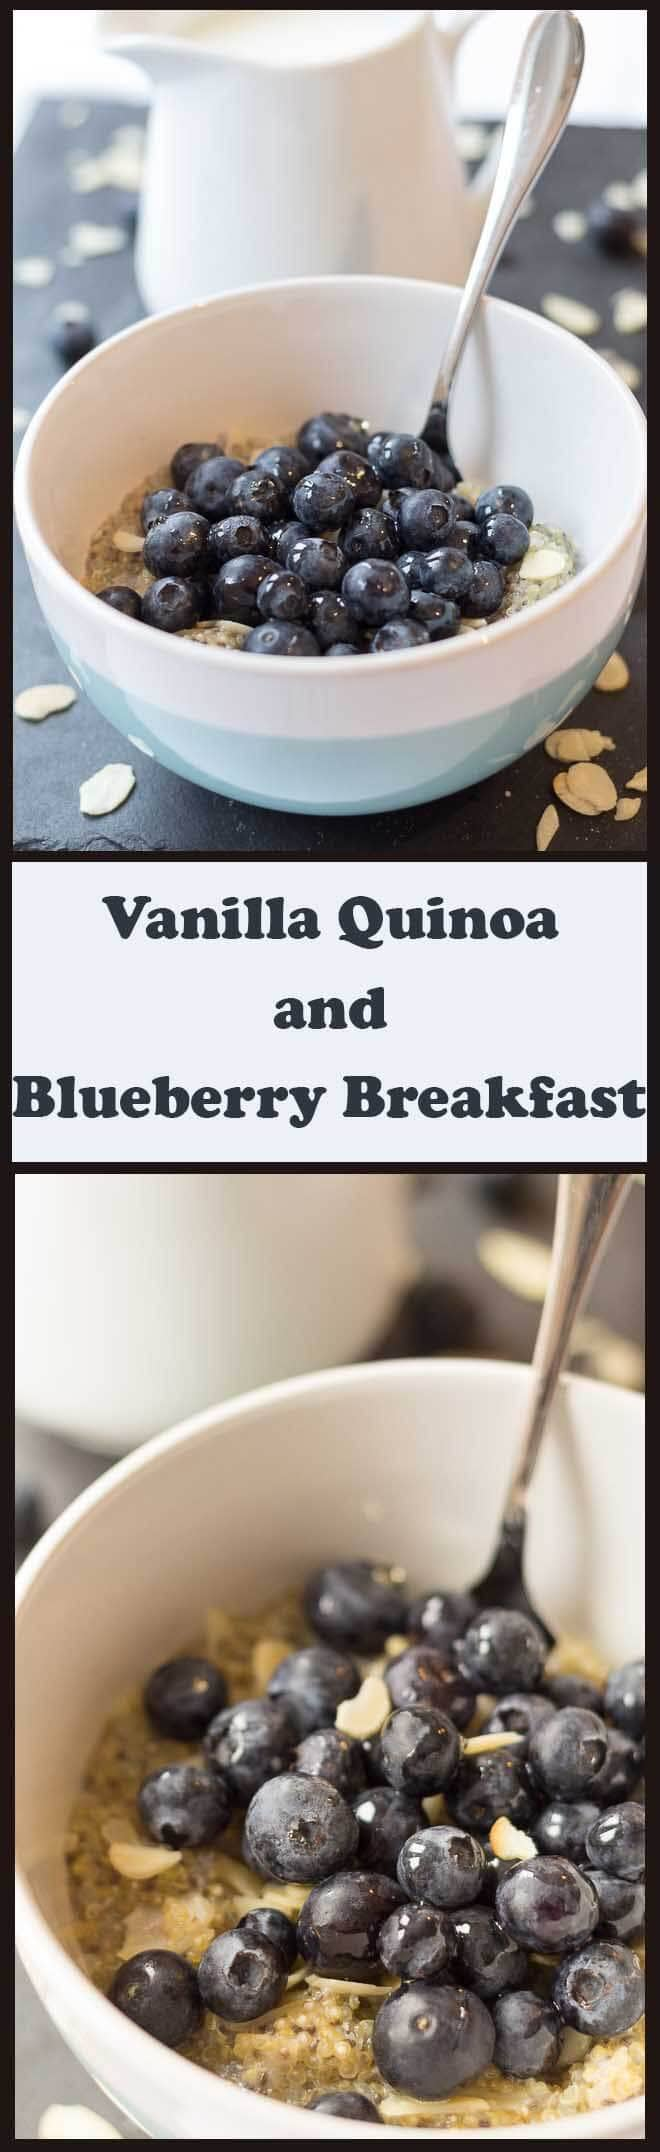 Gluten free and nutty tasting, this vanilla quinoa and blueberry breakfast makes for a delicious healthy alternative to traditional oatmeal.